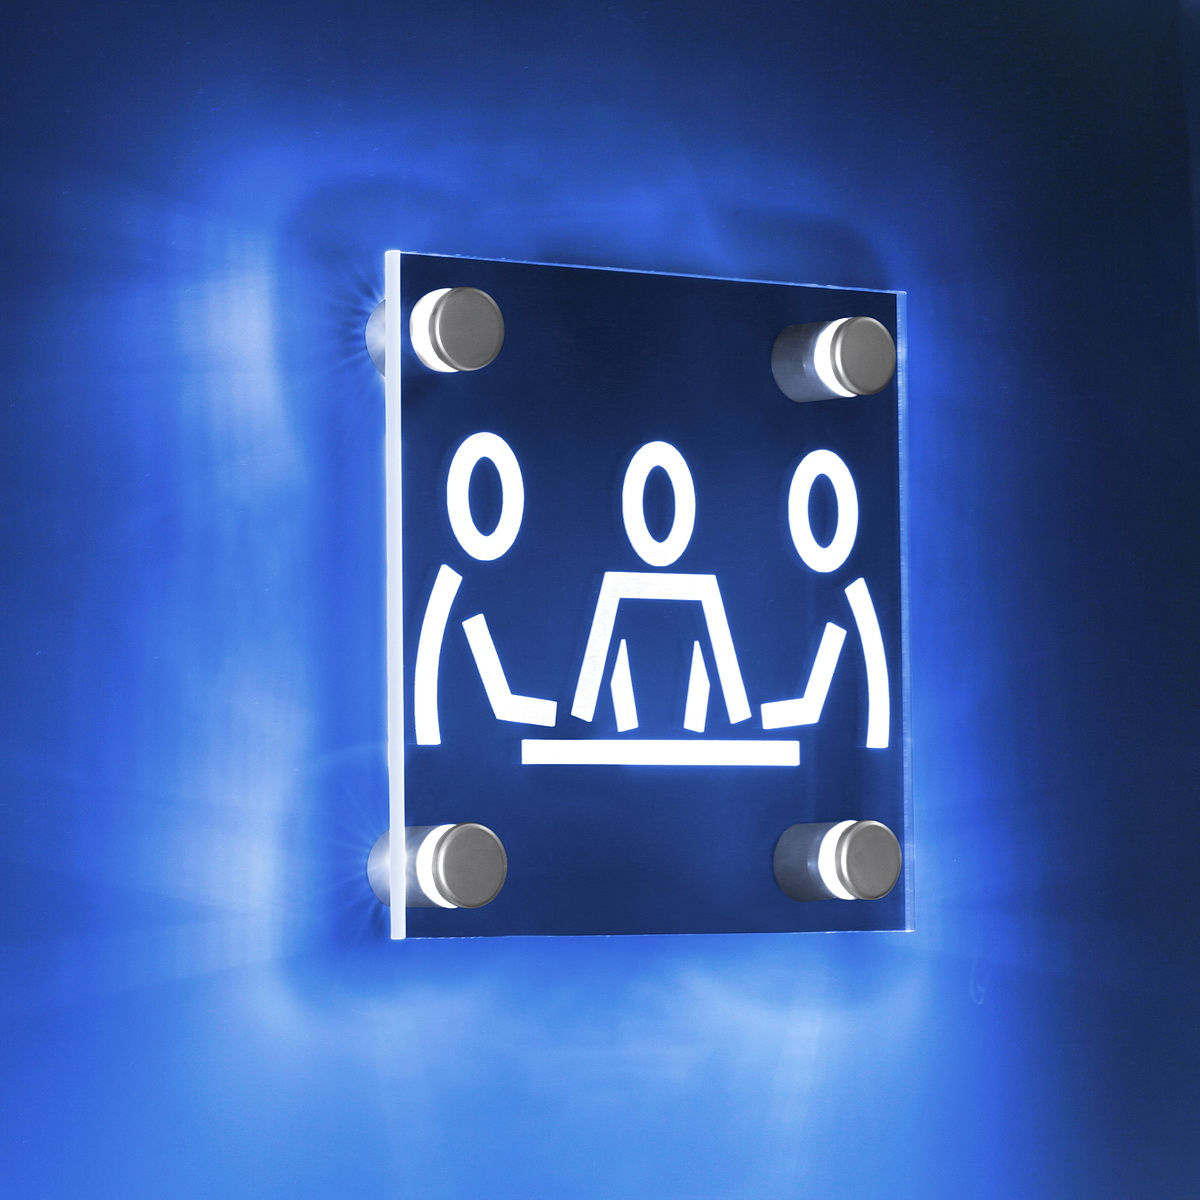 4 - BLUE LED Illuminated Standoff (1'' x 1'' Silver satin aluminum finish) Mount Kit Supports Signs Up To 3/8'' Thick, Wall Mount, Low Voltage transformer included.